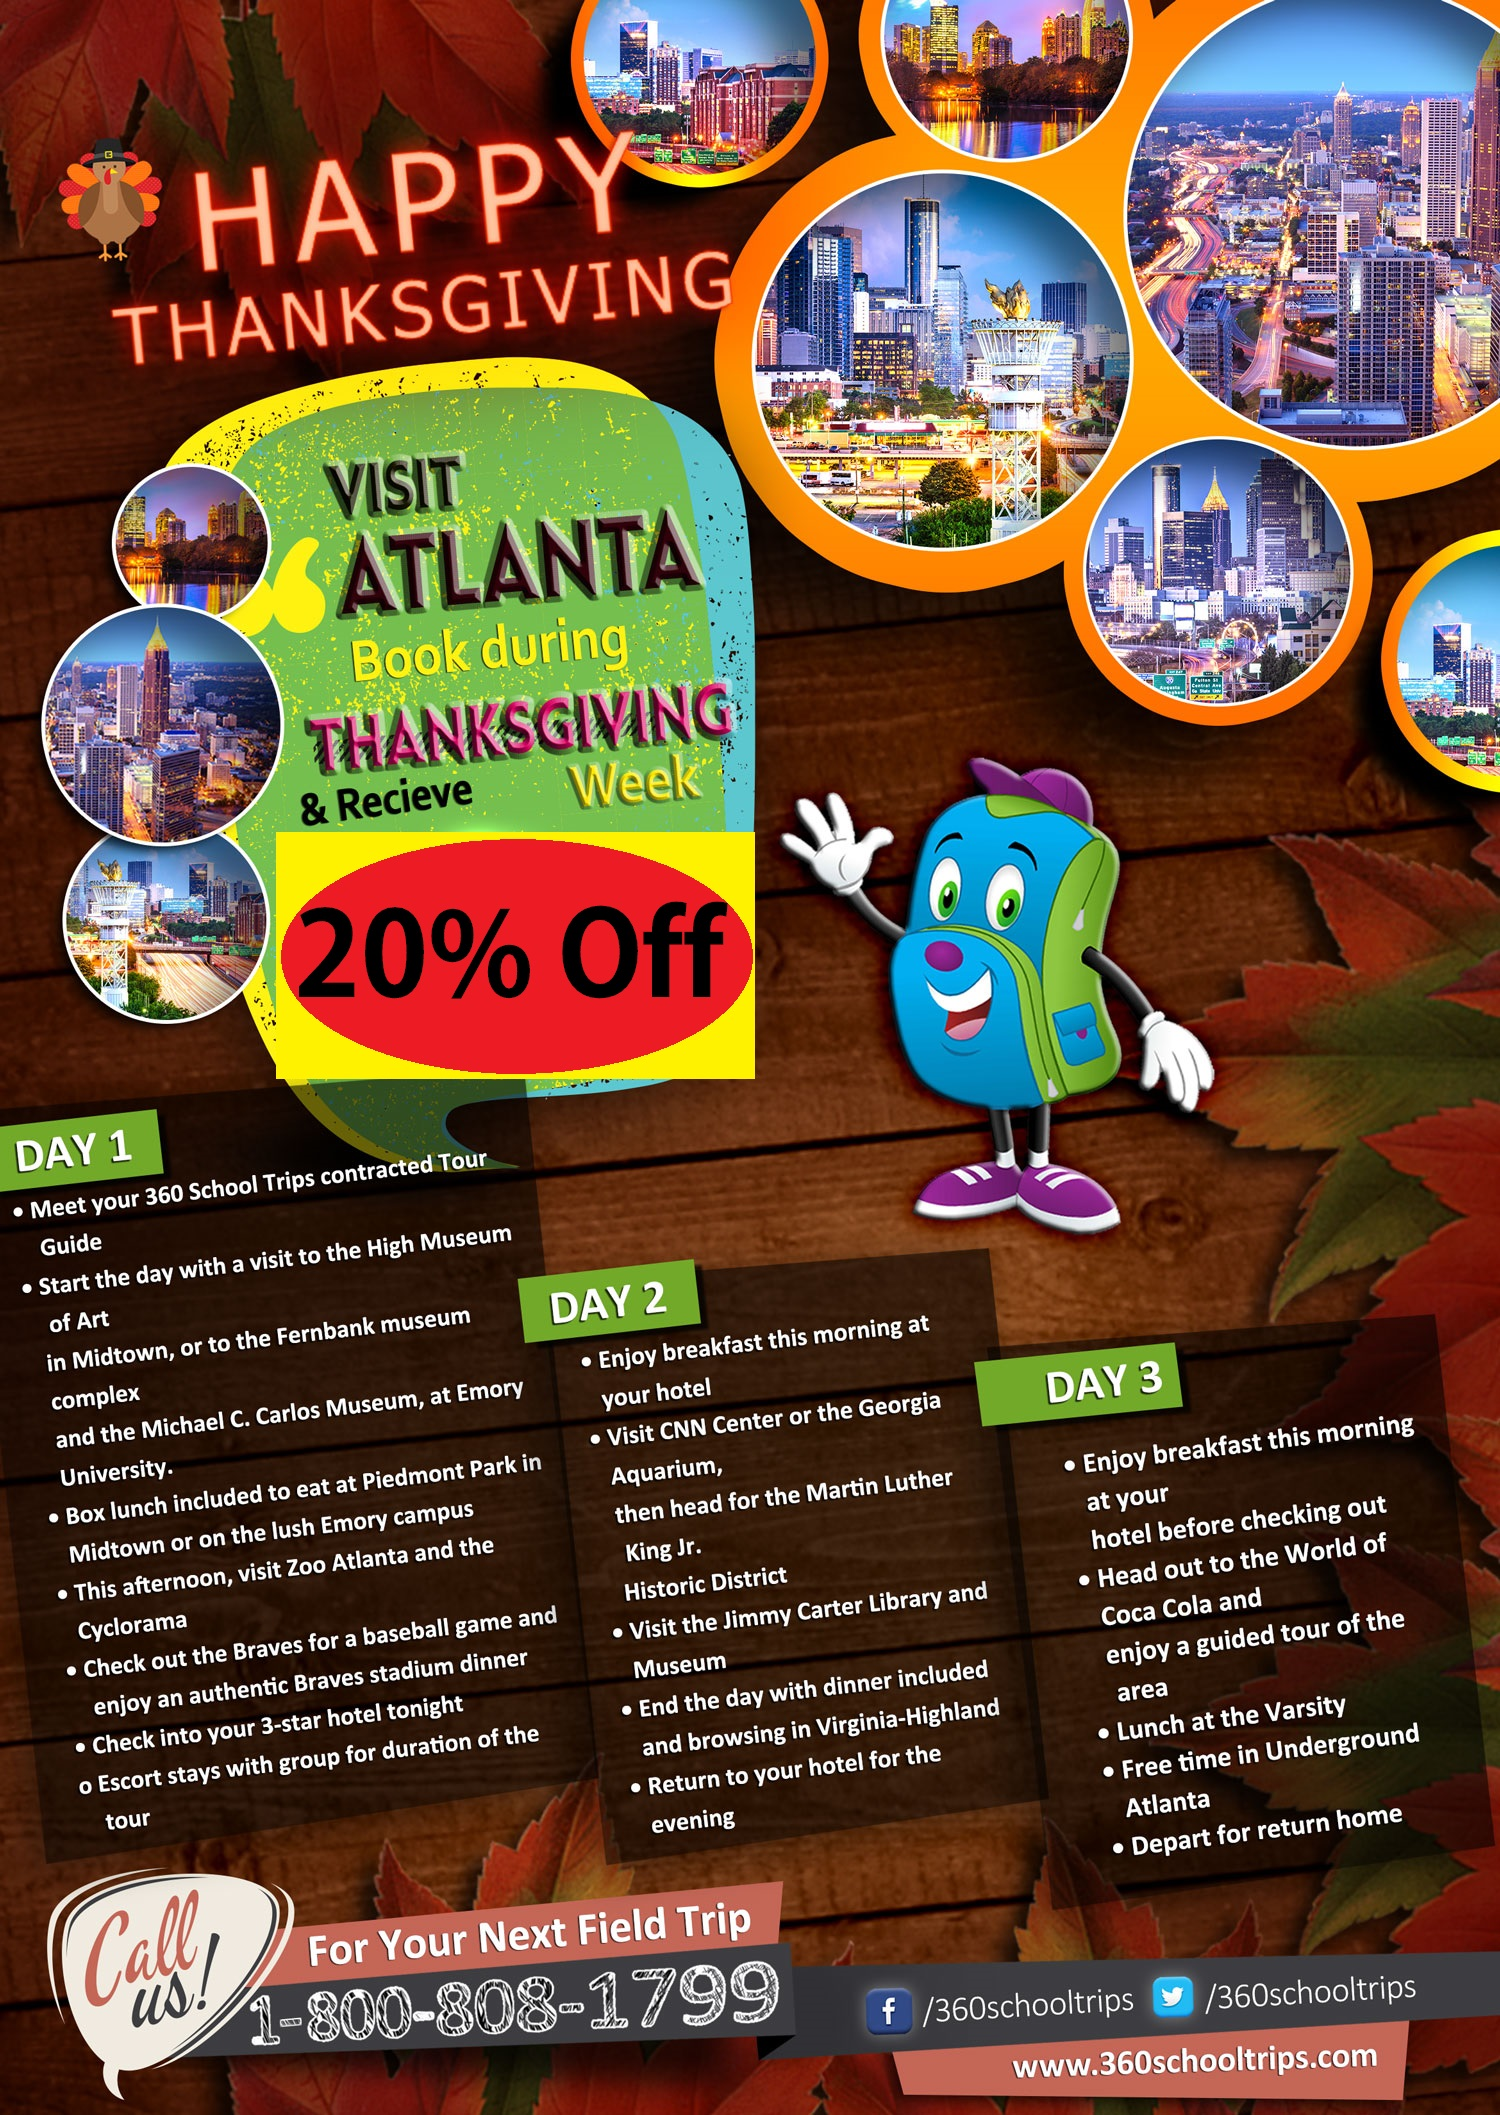 Visit Atlanta Book During ThanksGiving Week & Receive 20% Off